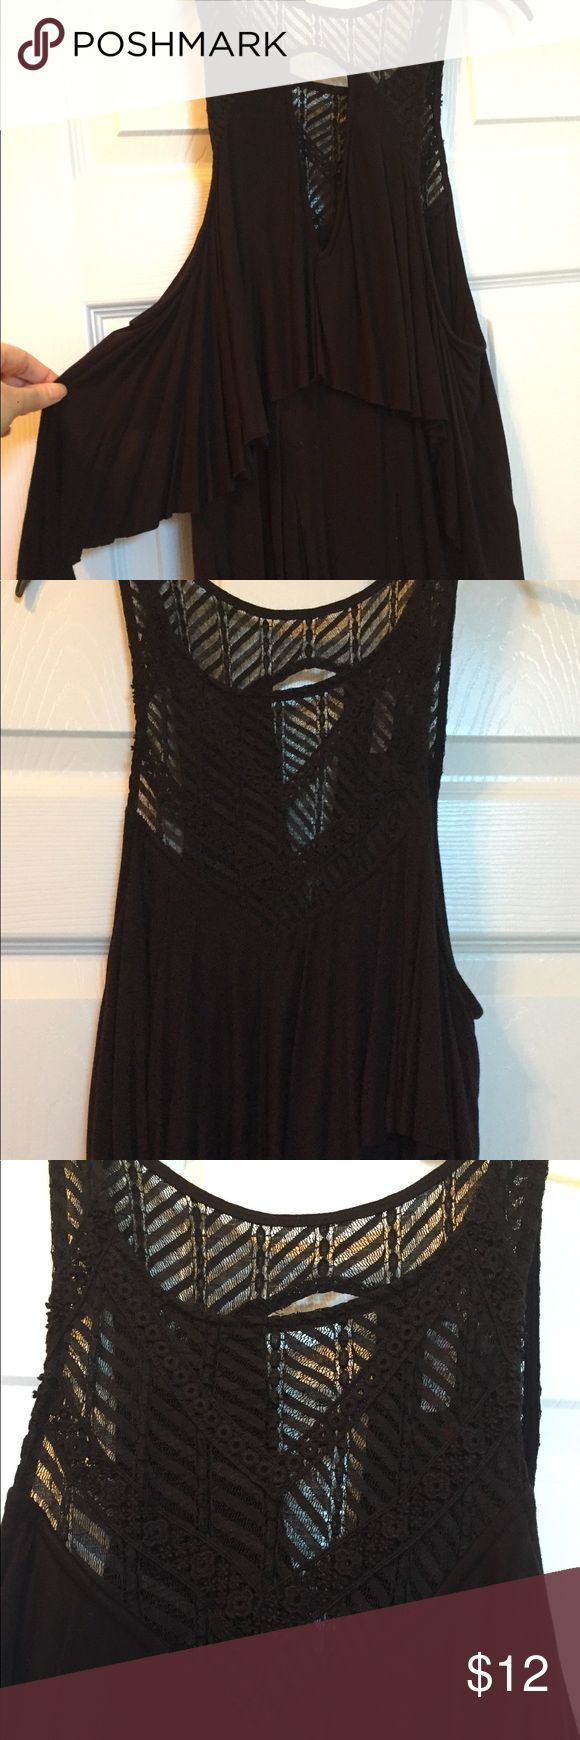 Free people crochet tank top with ruffle layers Turn heads in this free people top! Top is crochet bottom has ruffle like layers Free People Tops Tank Tops